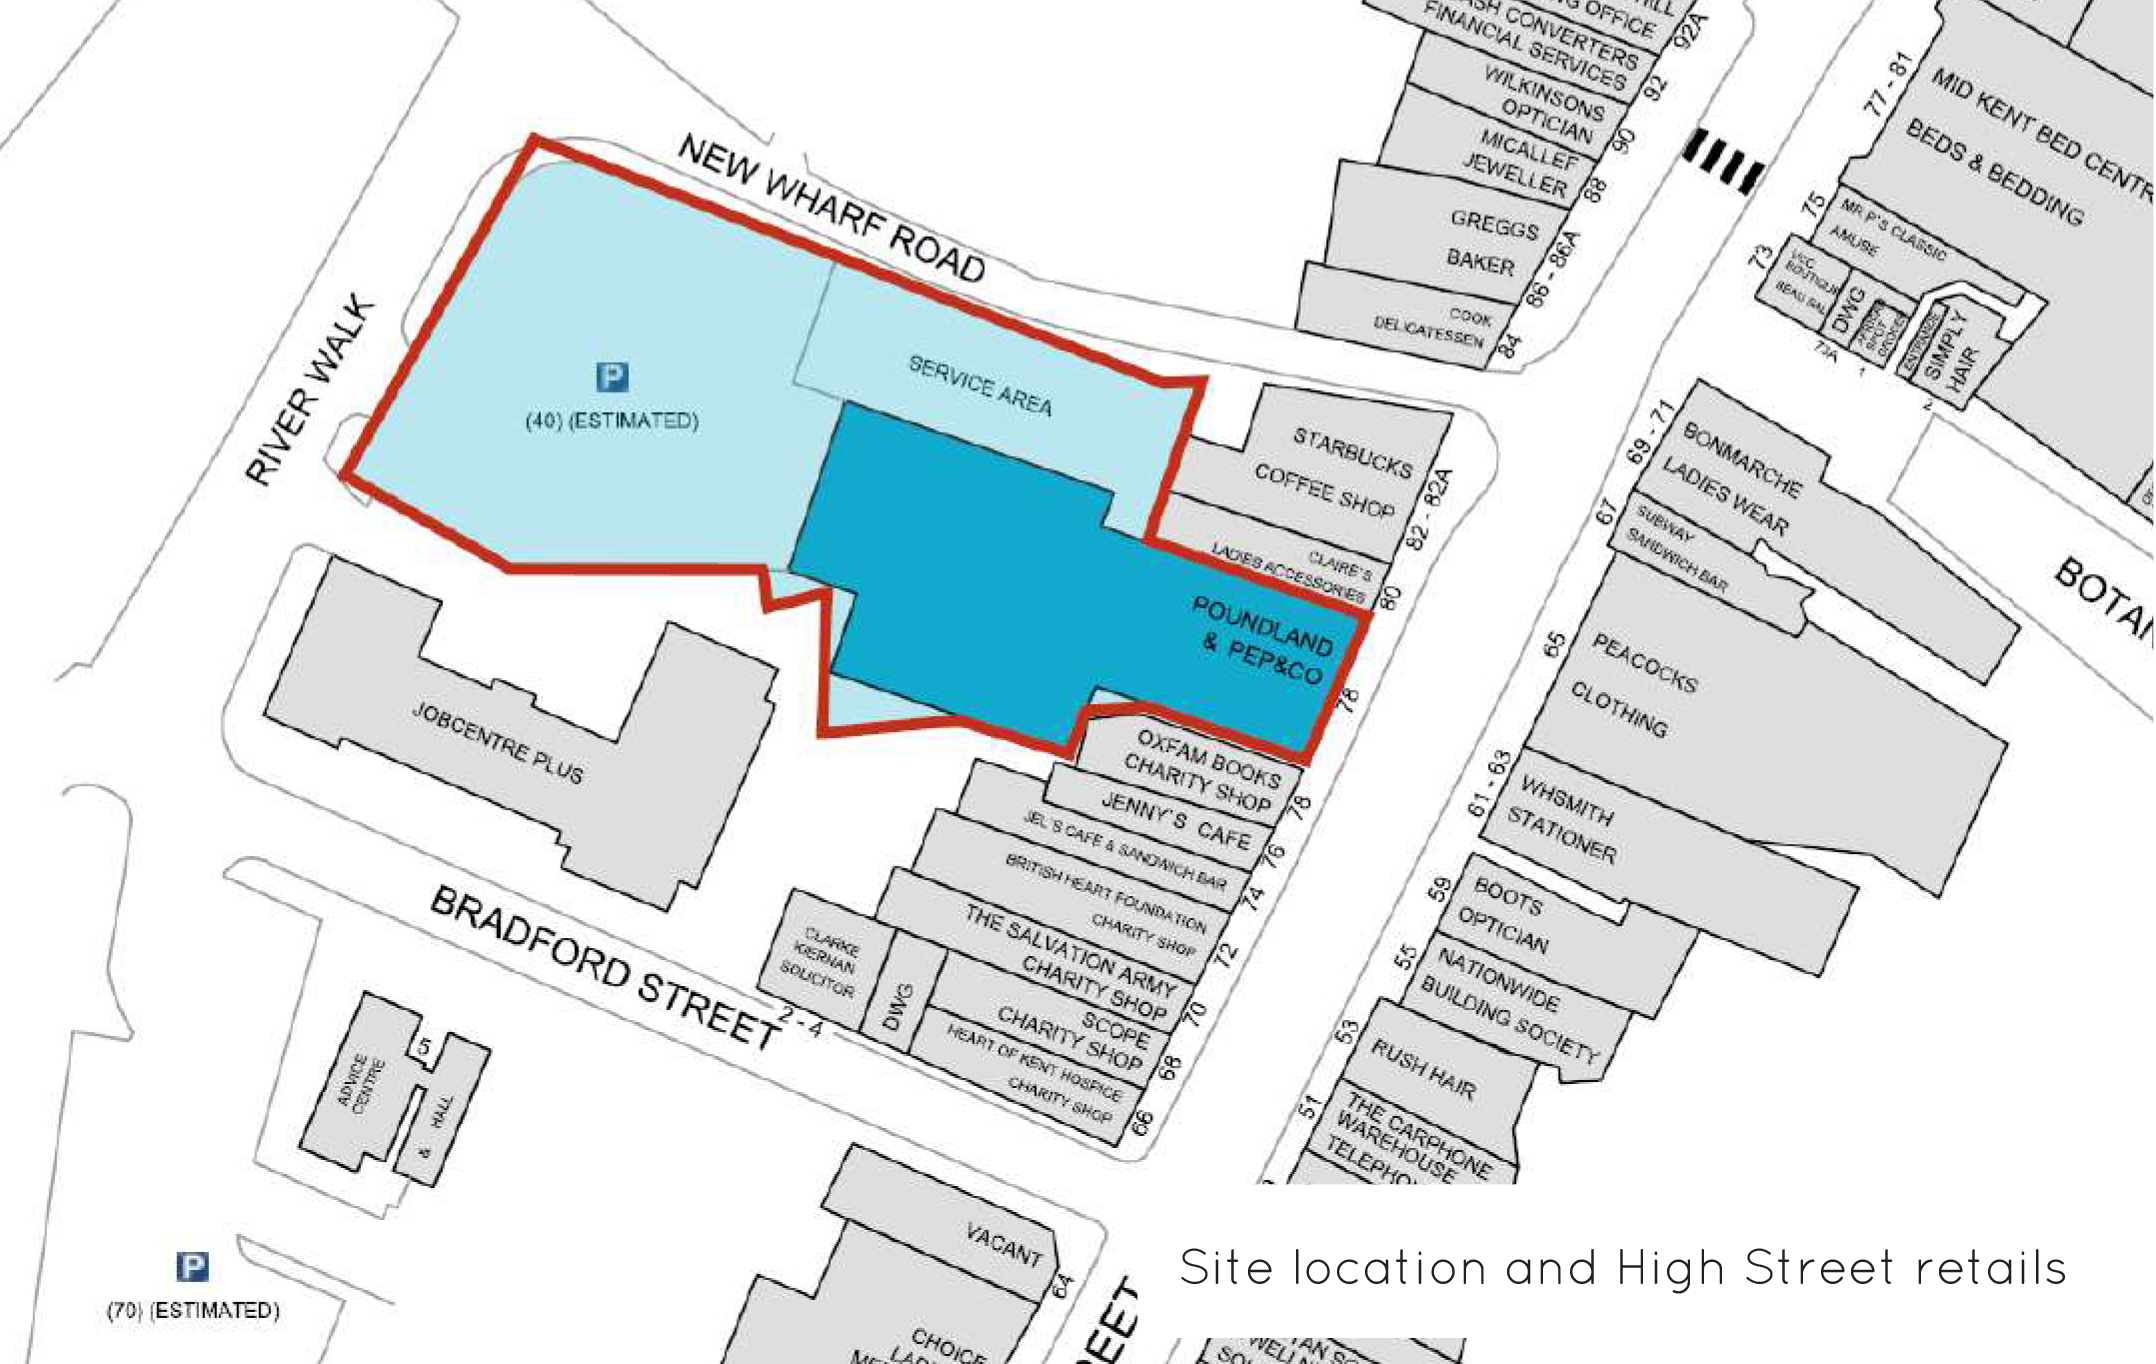 site location and highstreet retails.jpg